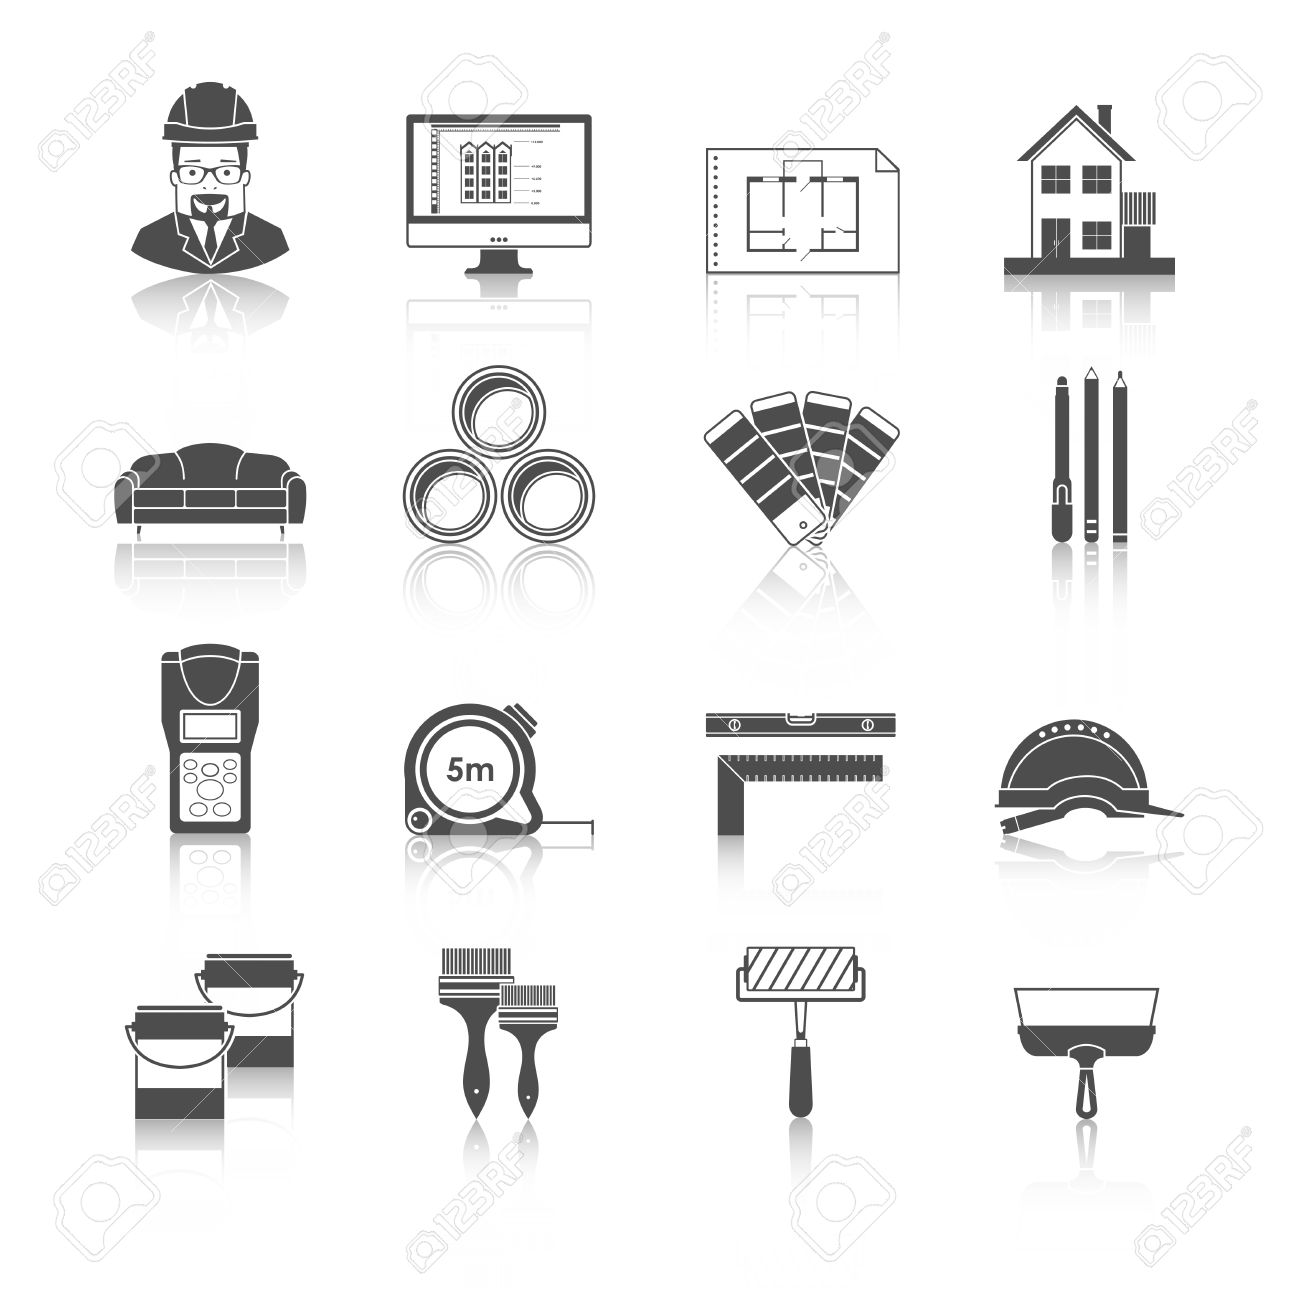 Architecture Interior Design And Repairs Vector Black Icons Set Stock